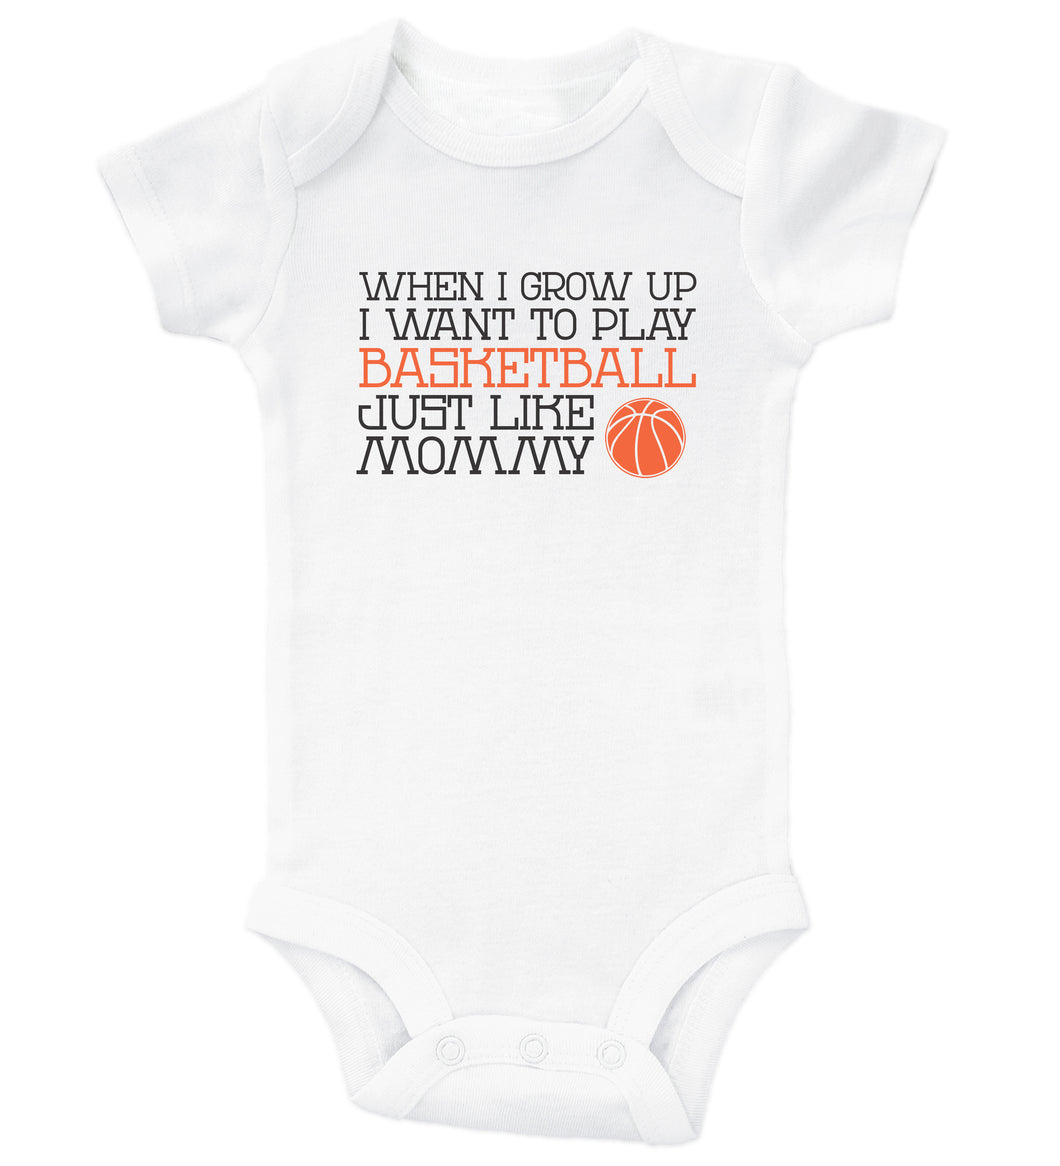 When I Grow Up I Want To Play Basketball Just Like Mommy / Basic Onesie